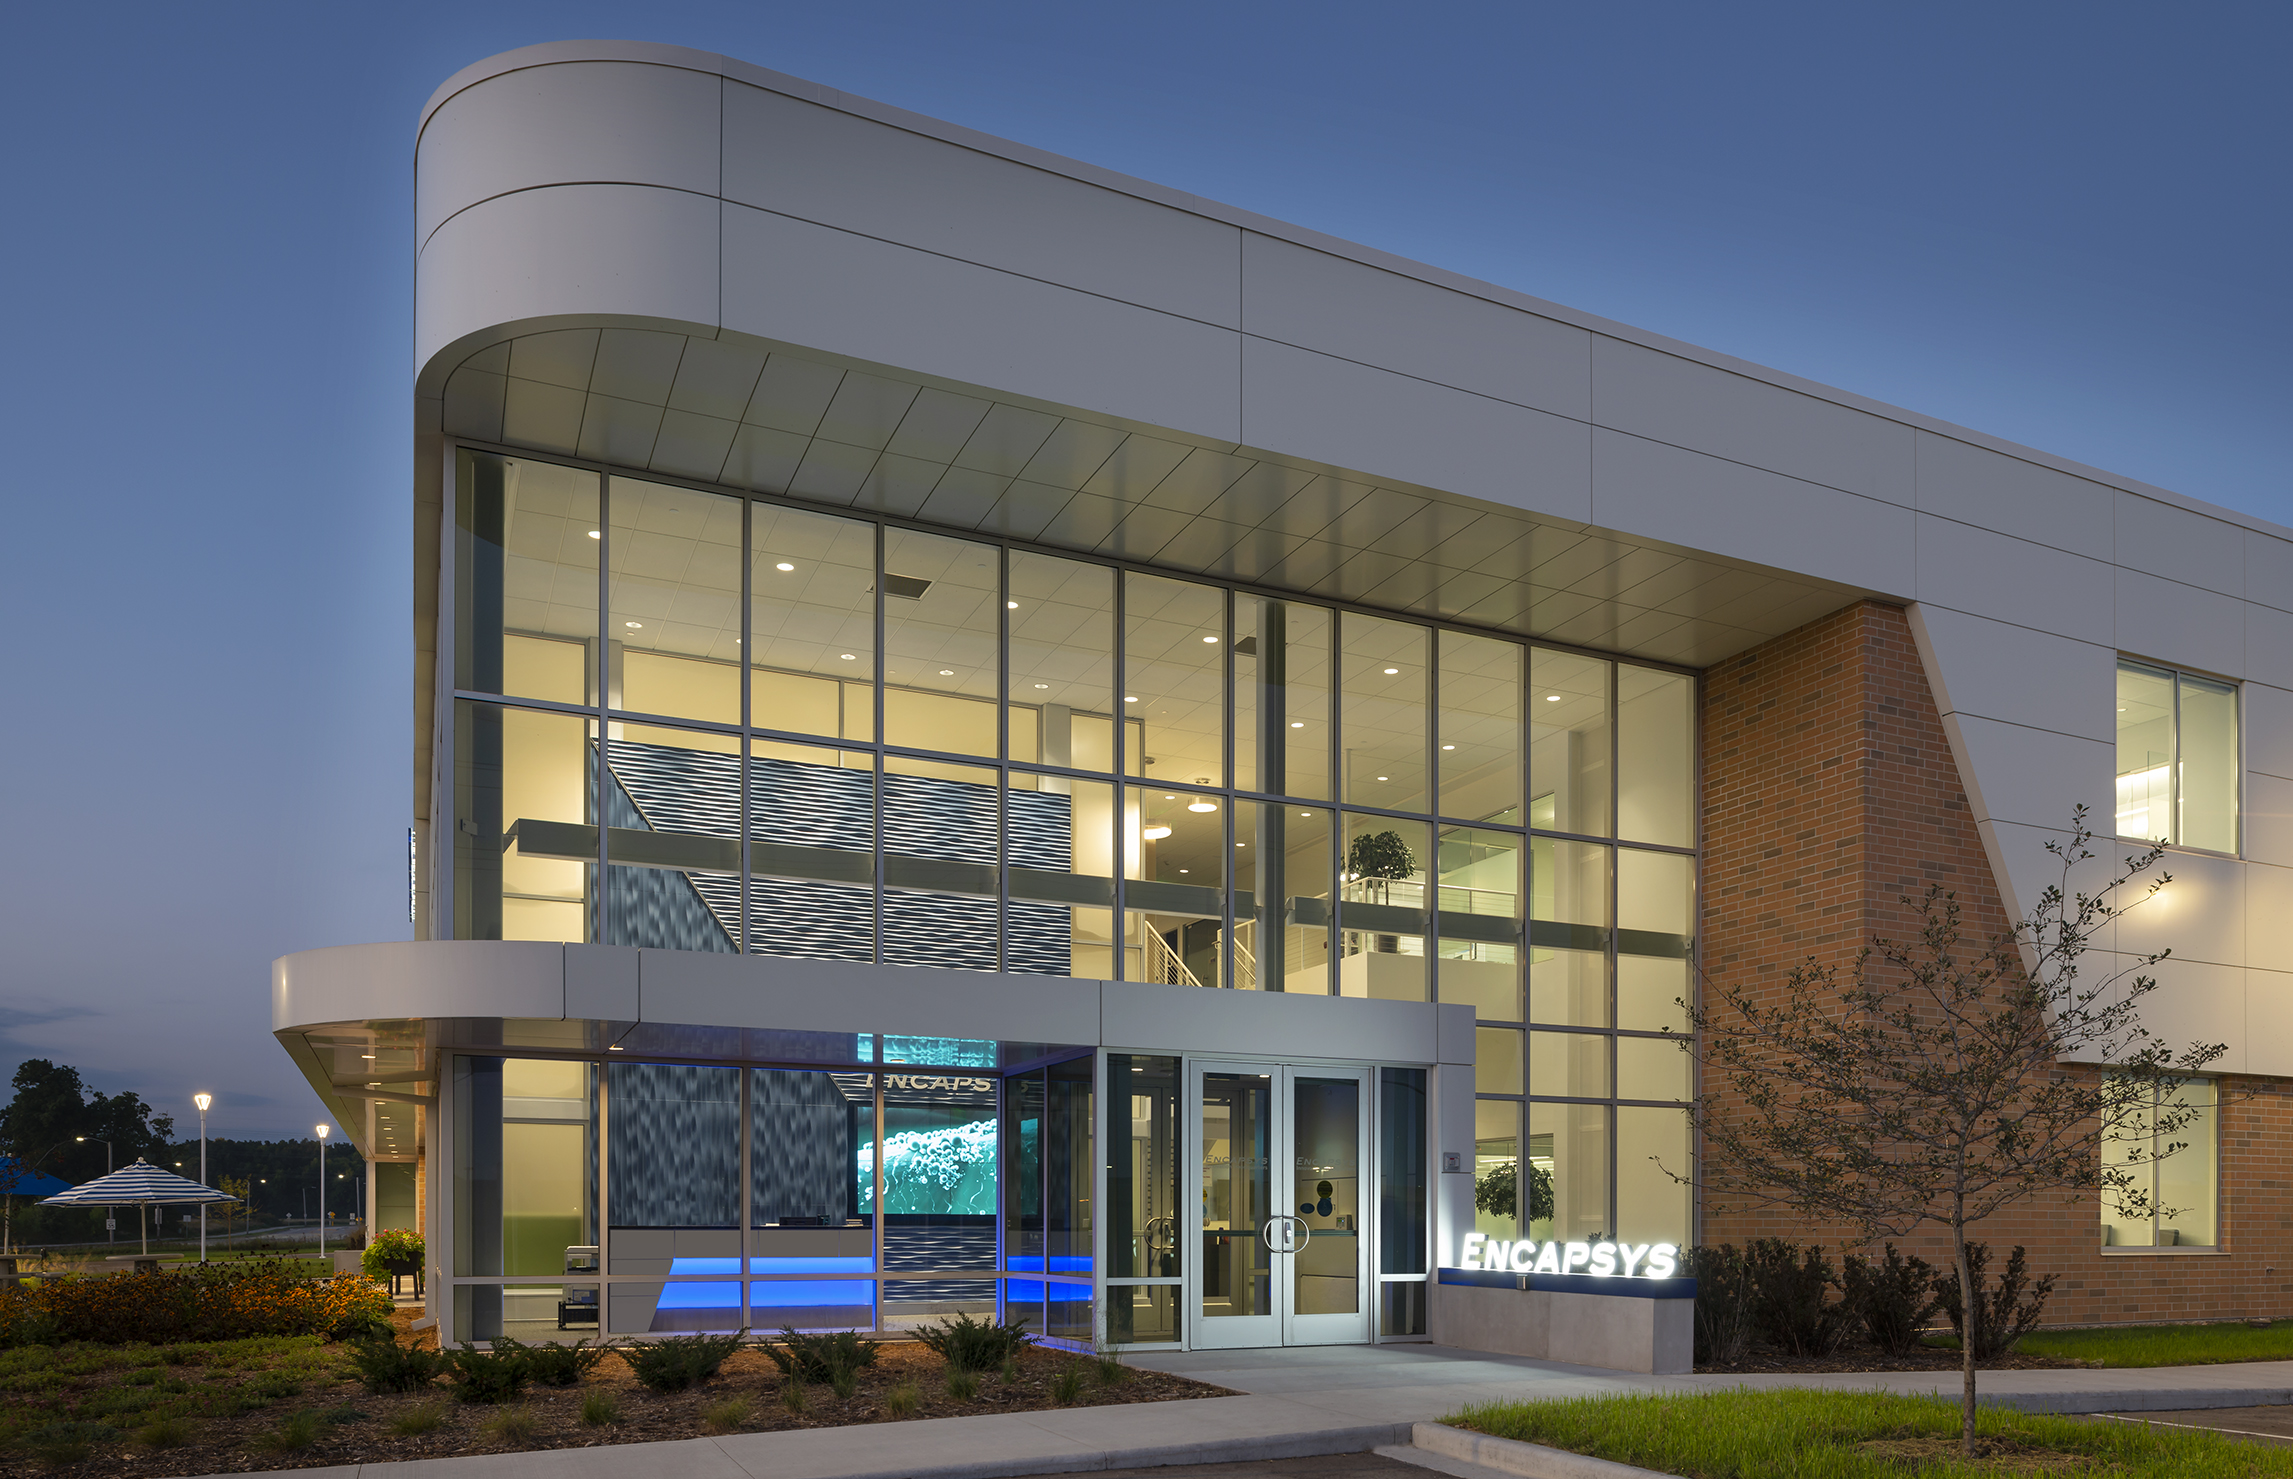 Small world: Microscopic Innovations Lead to Mammoth Developments for Appleton's Encapsys Banner Image